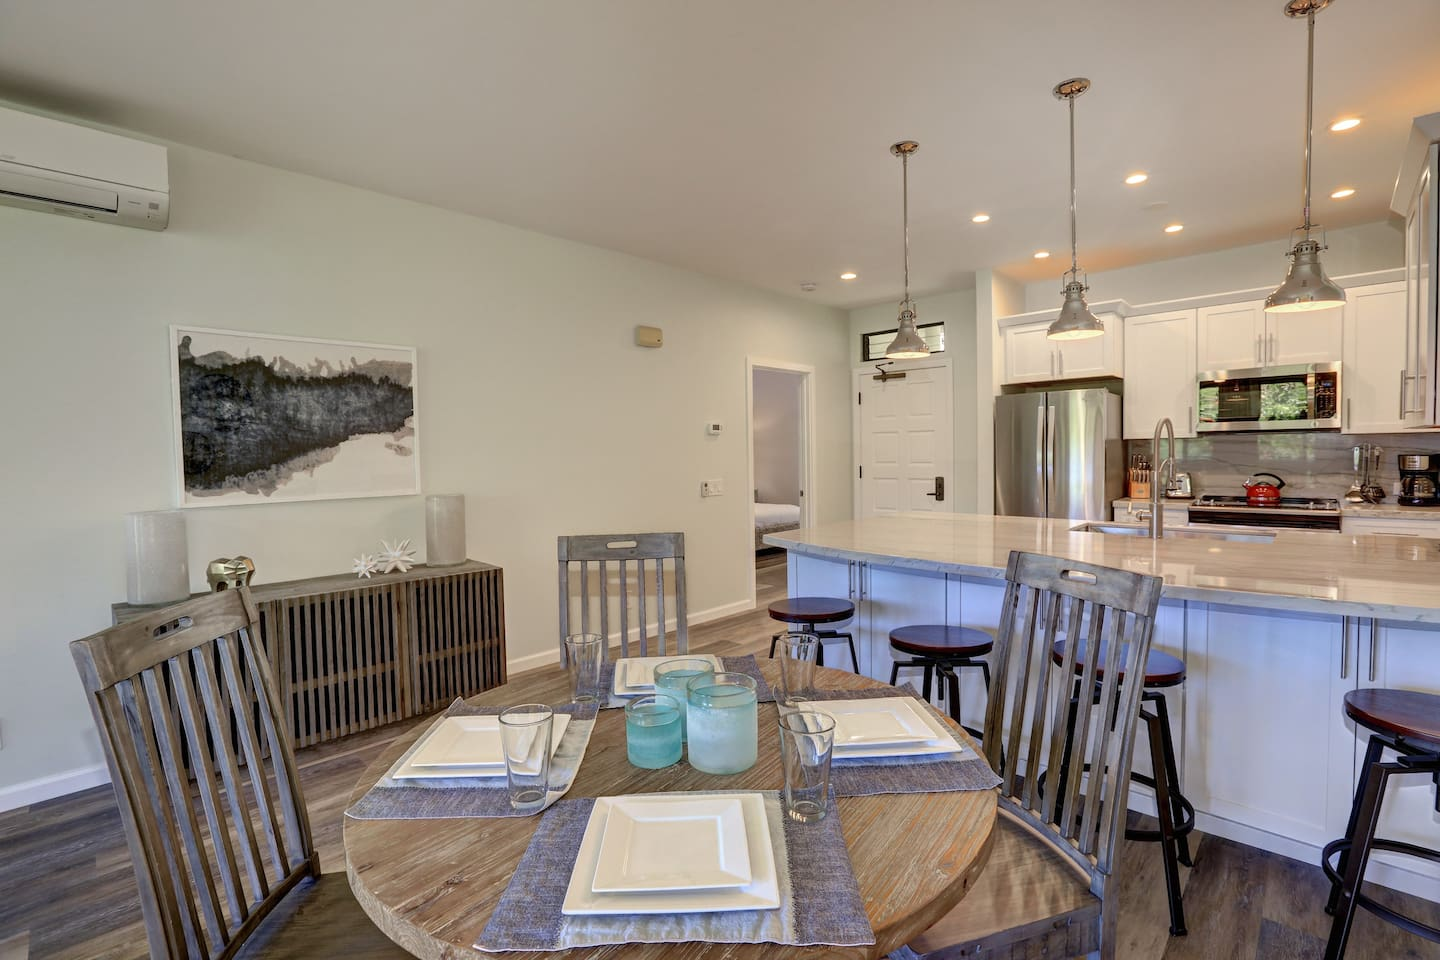 Top 10 Best Bed and Breakfasts in Maui featured by Hawaii blog, Hawaii Travel with Kids: HGTV Inspired Remodel! Ocean View & min. to beach!